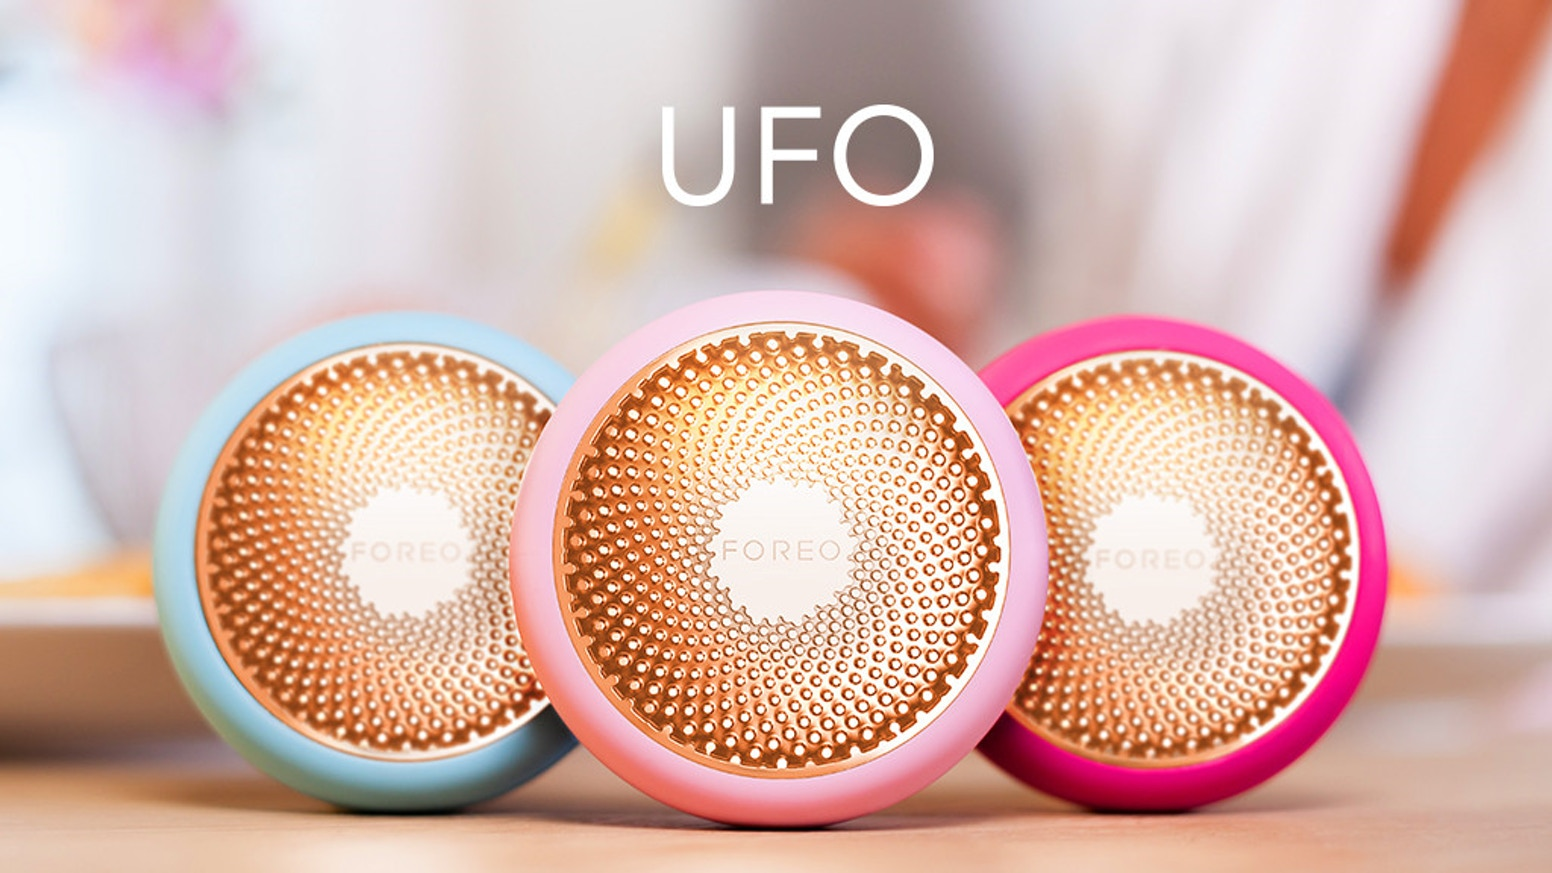 FOREO UFO: Beauty Tech Revolutionizes Face Masks in 90 Sec!